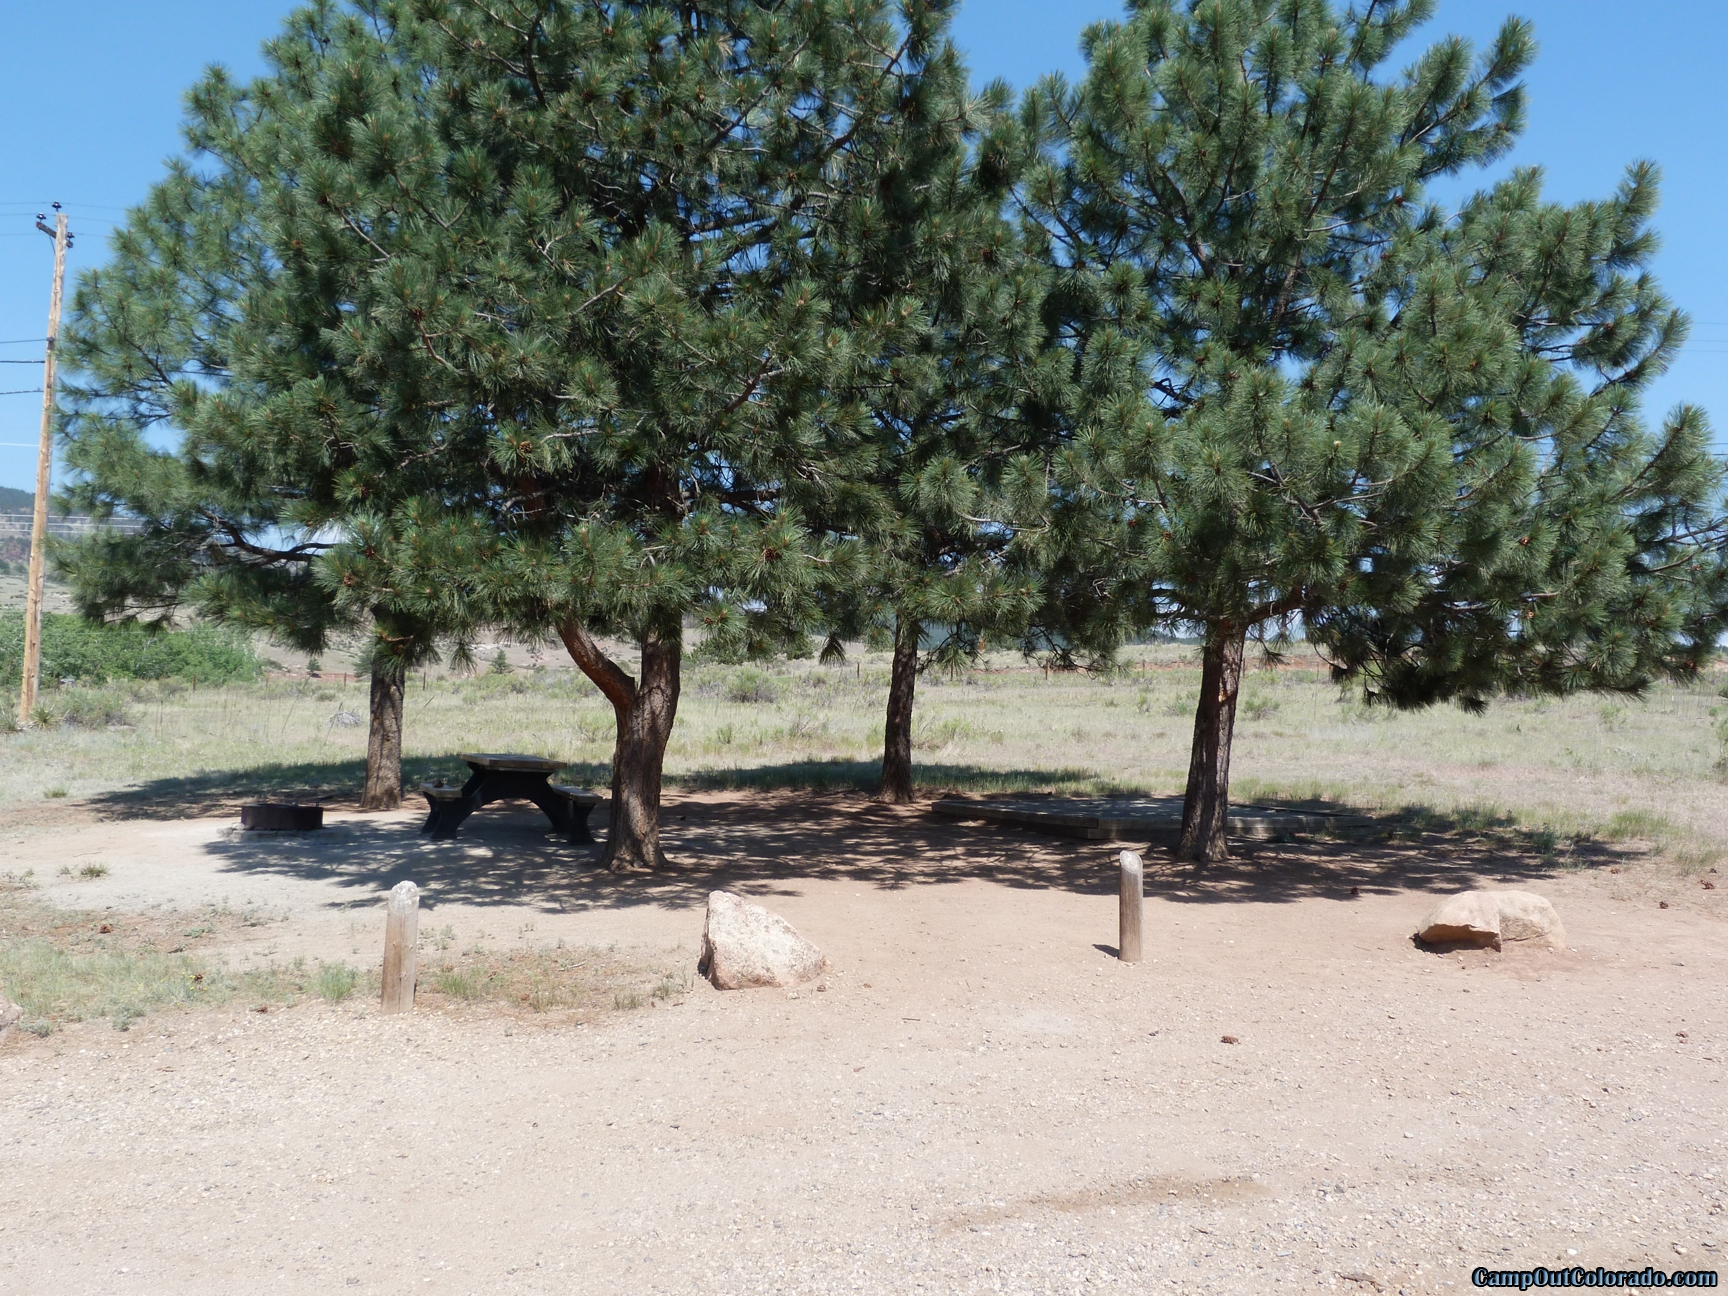 camp-out-colorado-flatirons-reservoir-campsite-with-shade